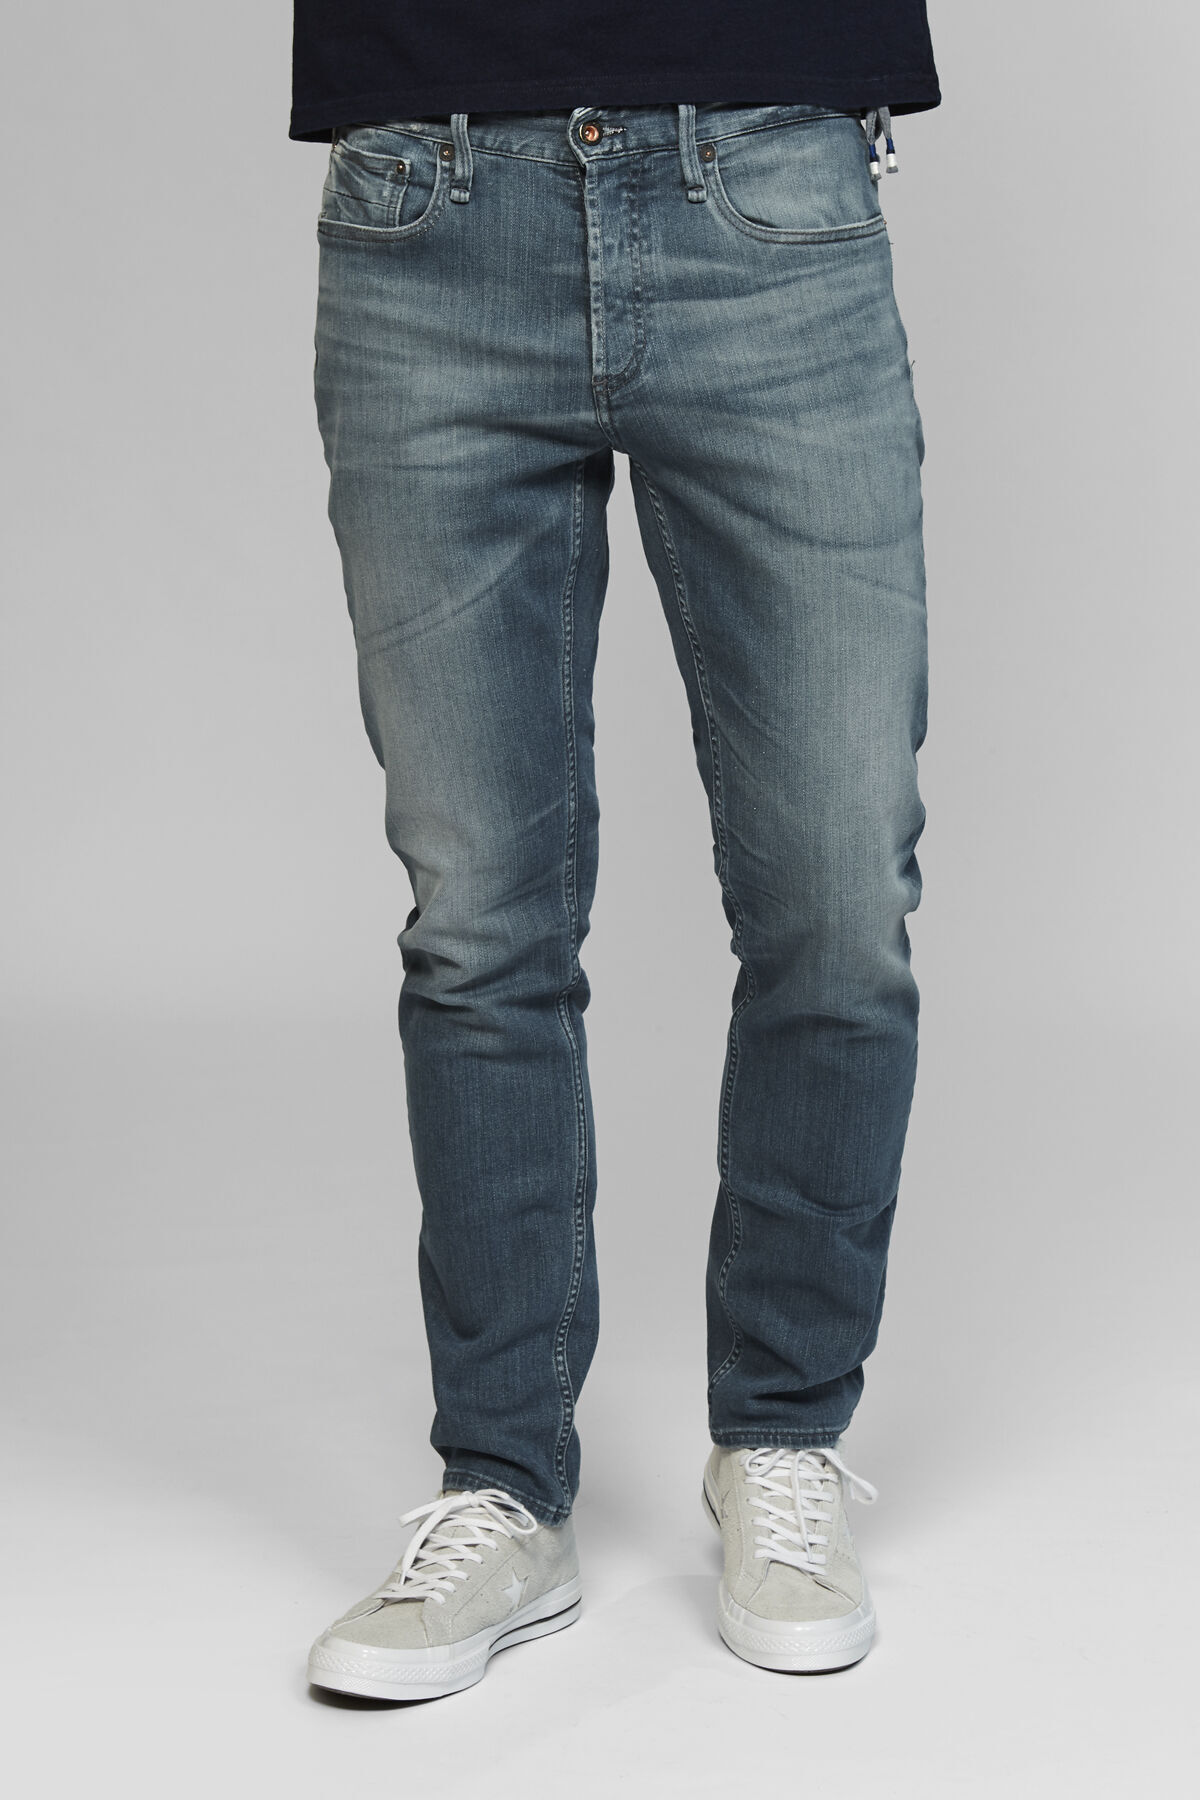 RAZOR Naturally Faded Indigo Denim - Slim Fit